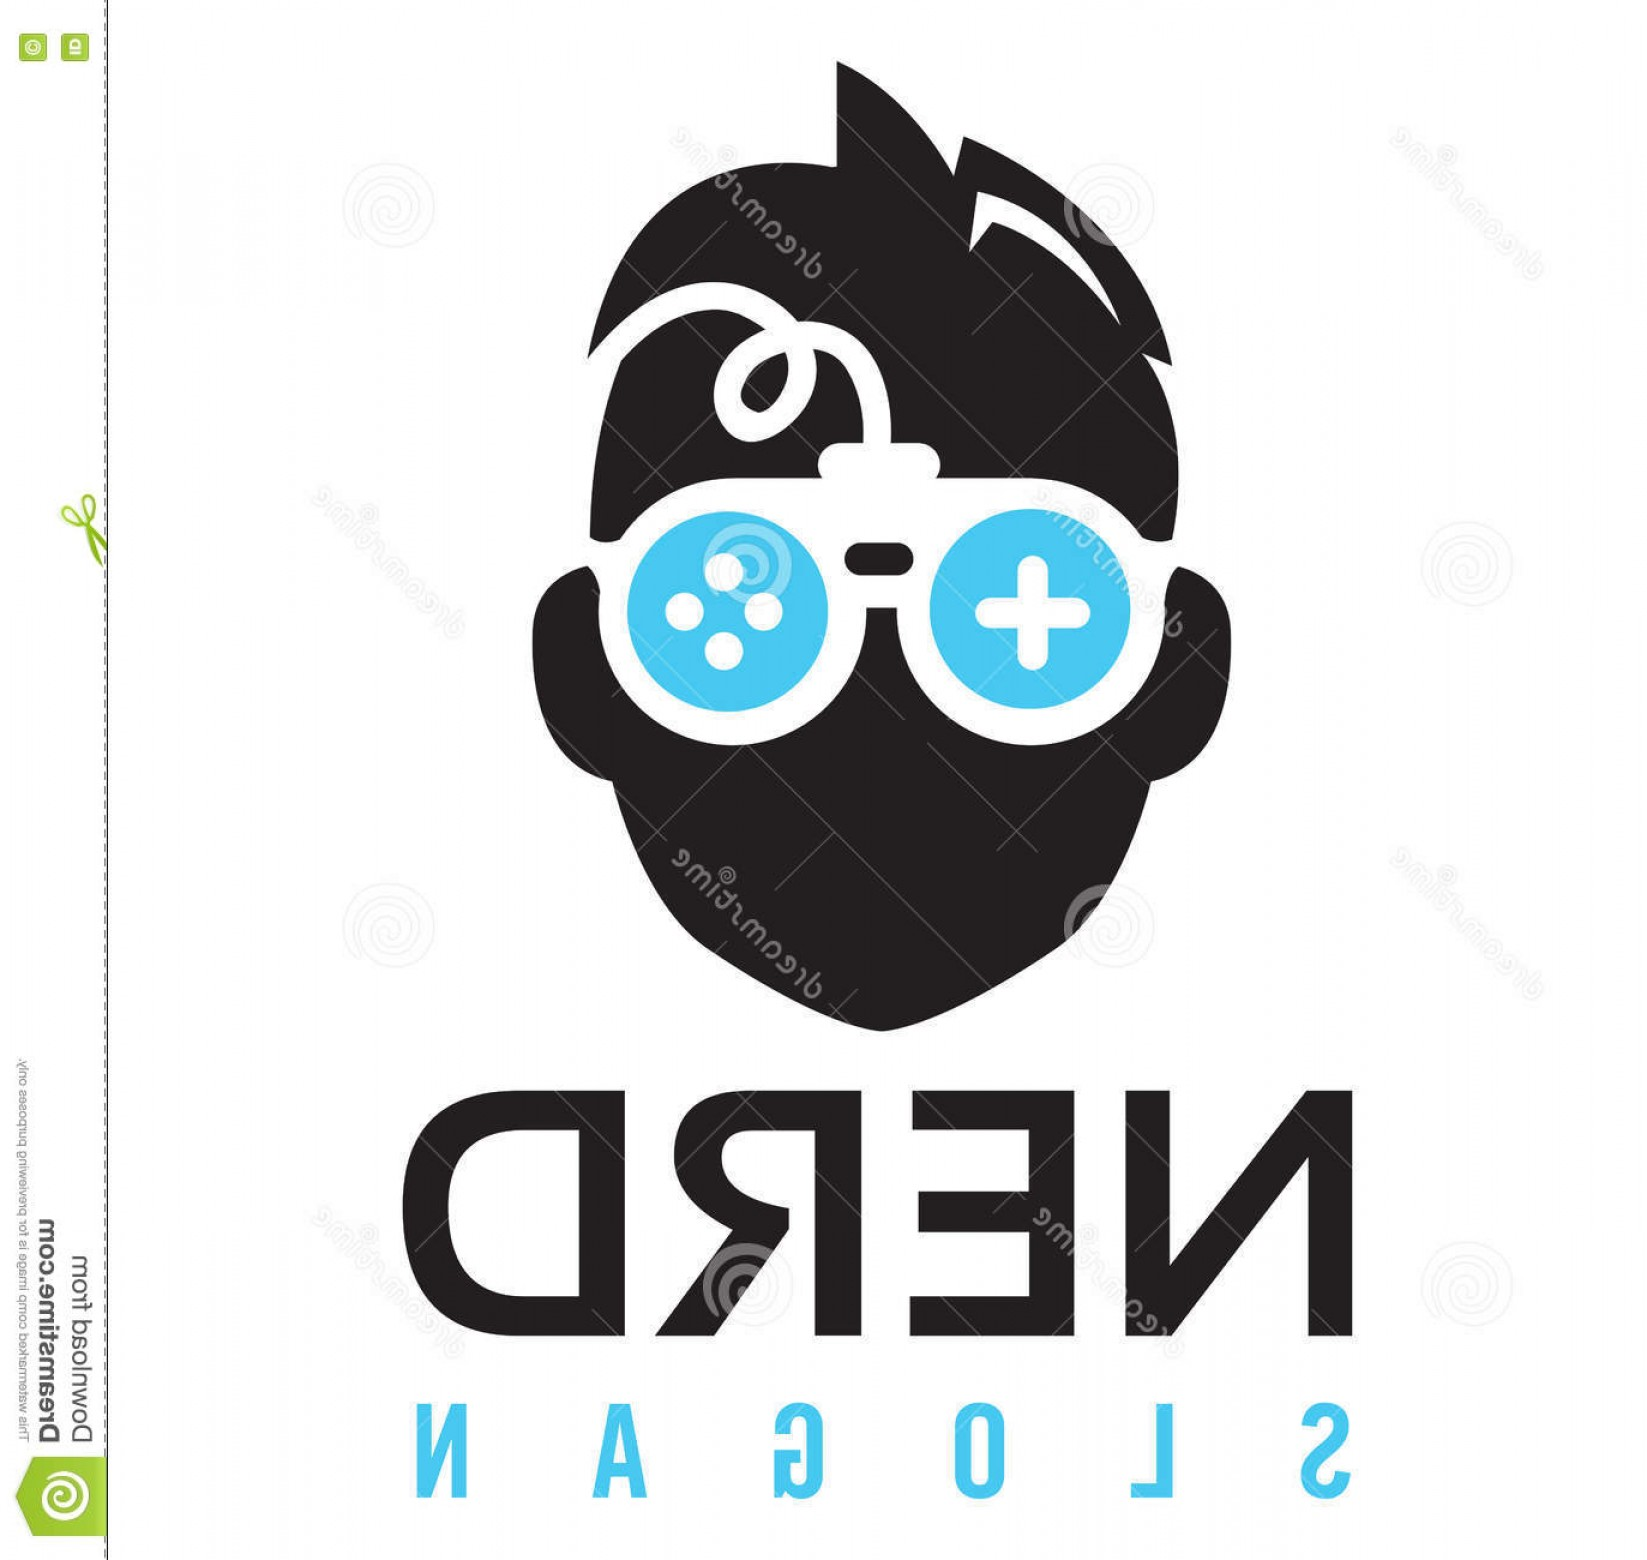 Nerd Vector: Stock Illustration Nerd Gaming Logo Character Face Wearing Pair Glasses Look Like Controller Image